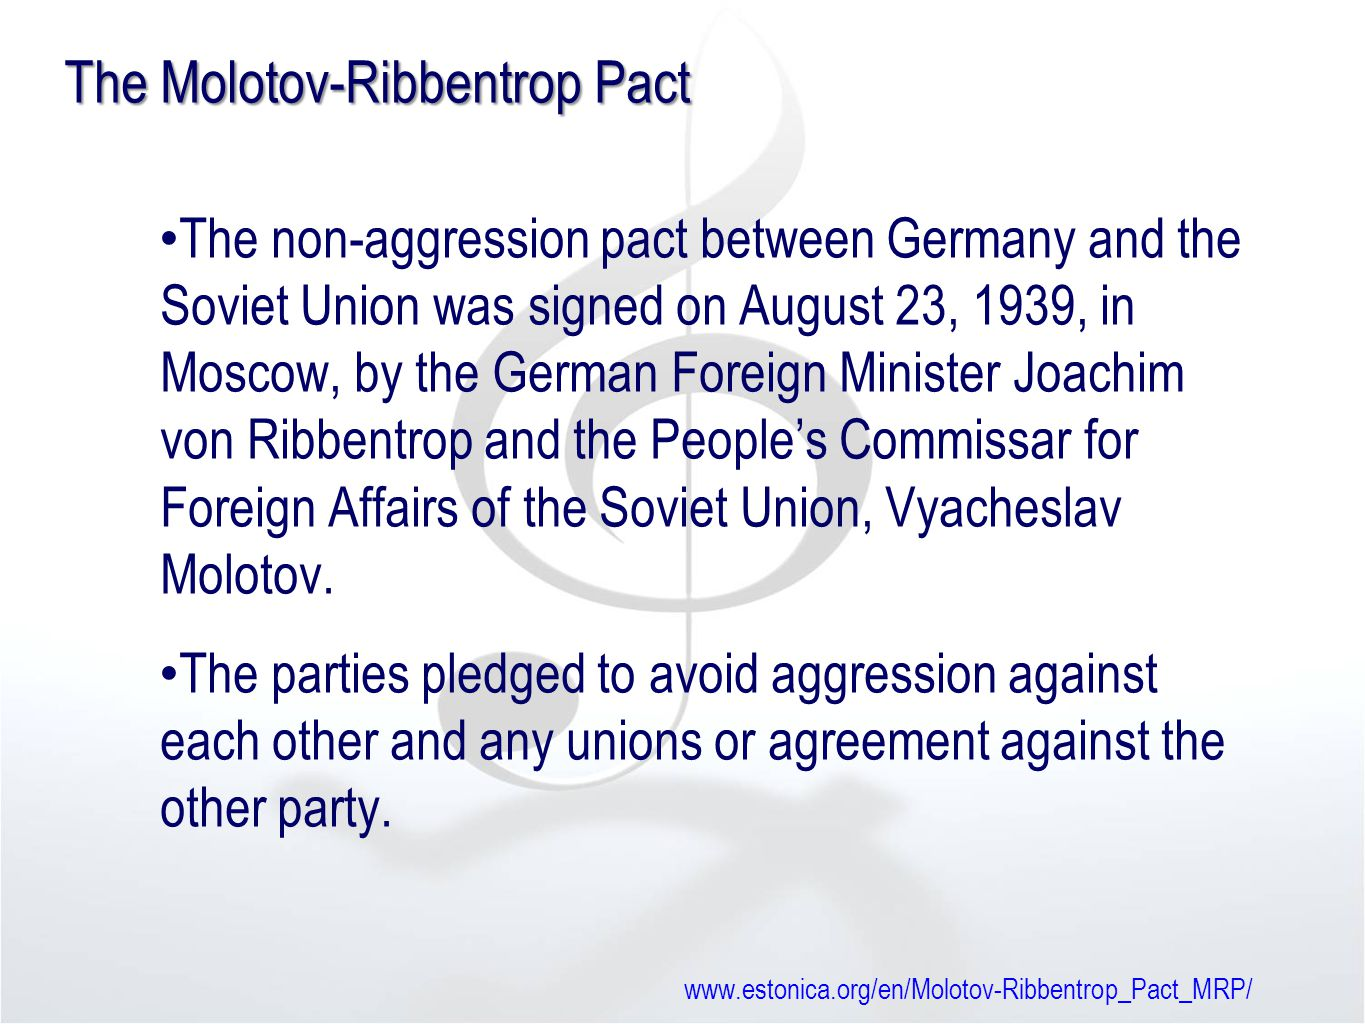 The Molotov-Ribbentrop Pact The non-aggression pact between Germany and the Soviet Union was signed on August 23, 1939, in Moscow, by the German Foreign Minister Joachim von Ribbentrop and the People's Commissar for Foreign Affairs of the Soviet Union, Vyacheslav Molotov.